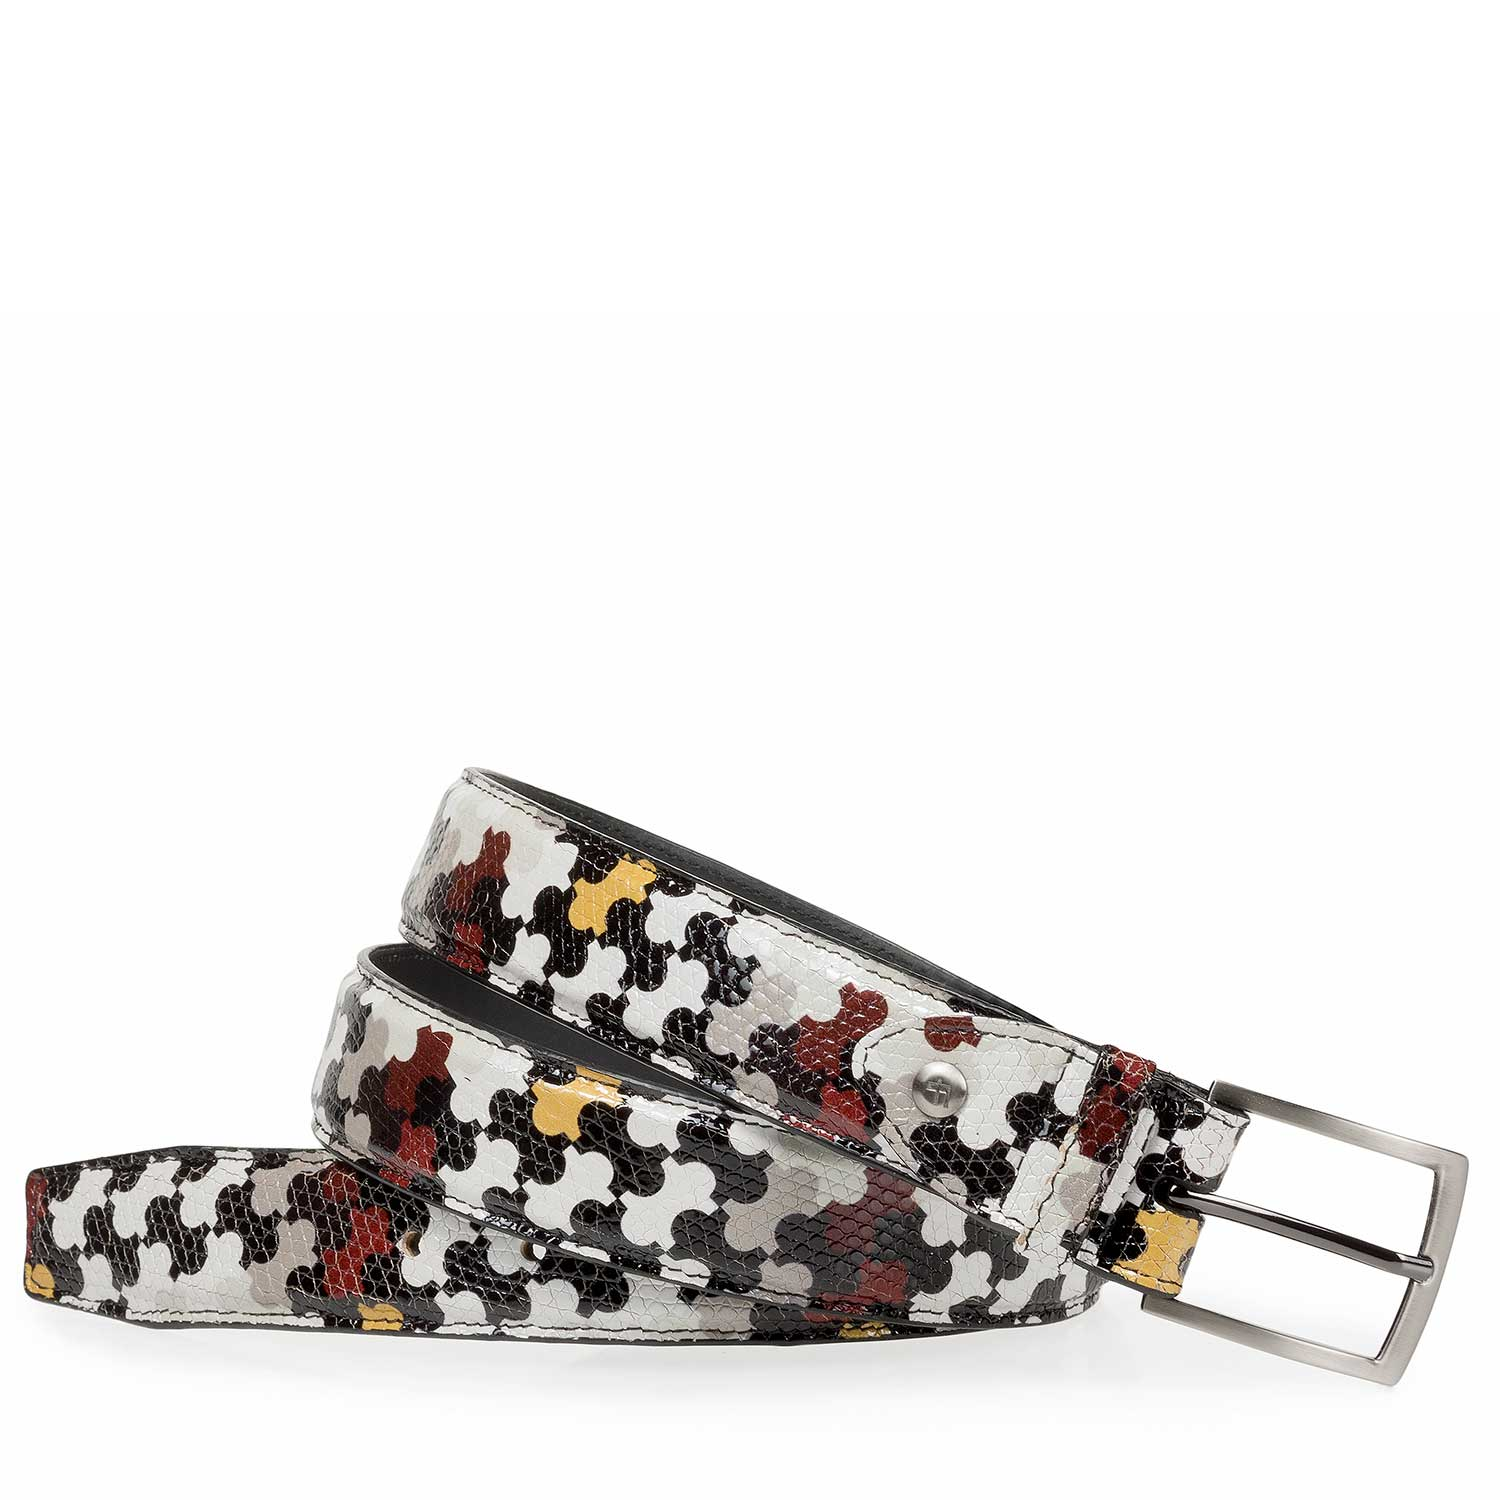 75200/12 - Multi-coloured calf leather belt with print